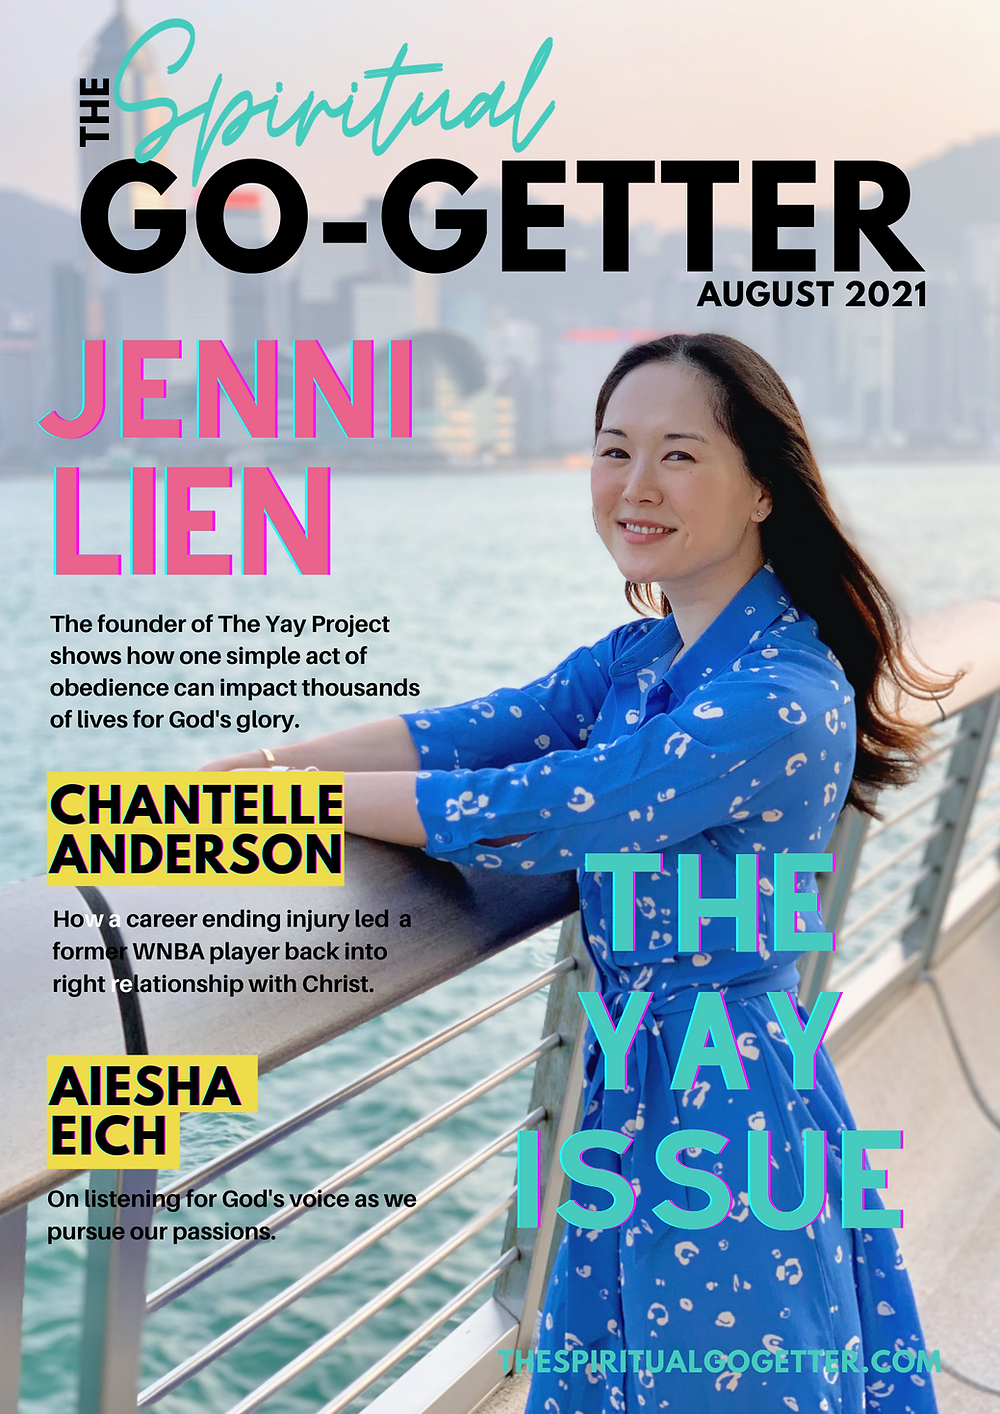 Jenni Lien of The Yay Project in The Spiritual Go-Getter Magazine